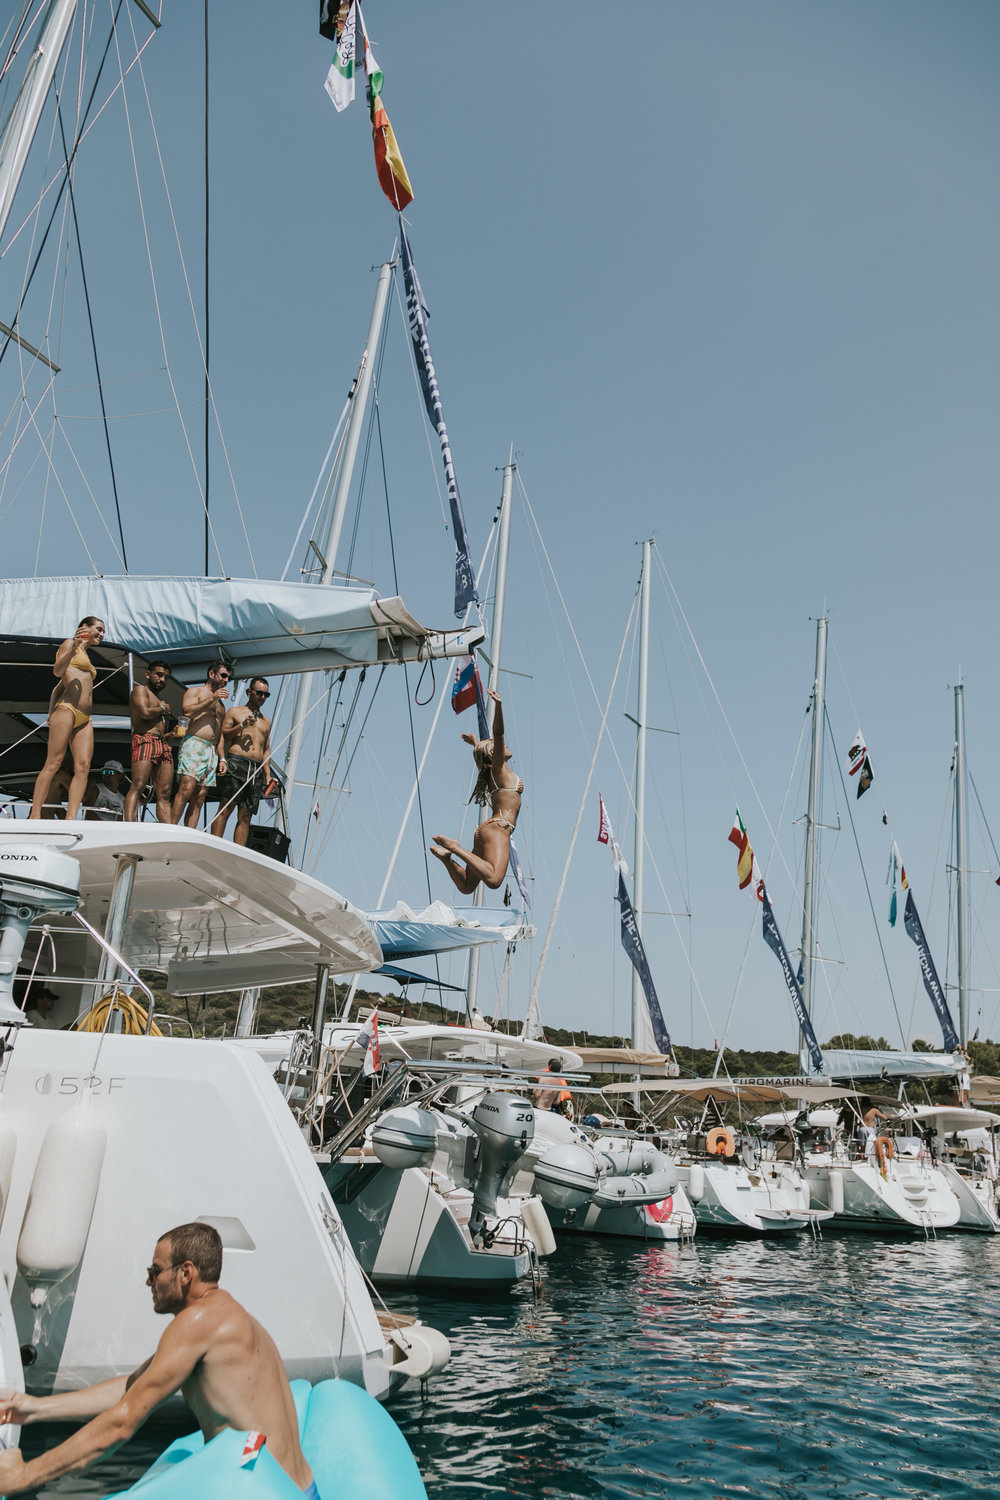 Supercharge-YachtWeek-AUG2018-CreditAllisonKuhlPhotos-7855.jpg